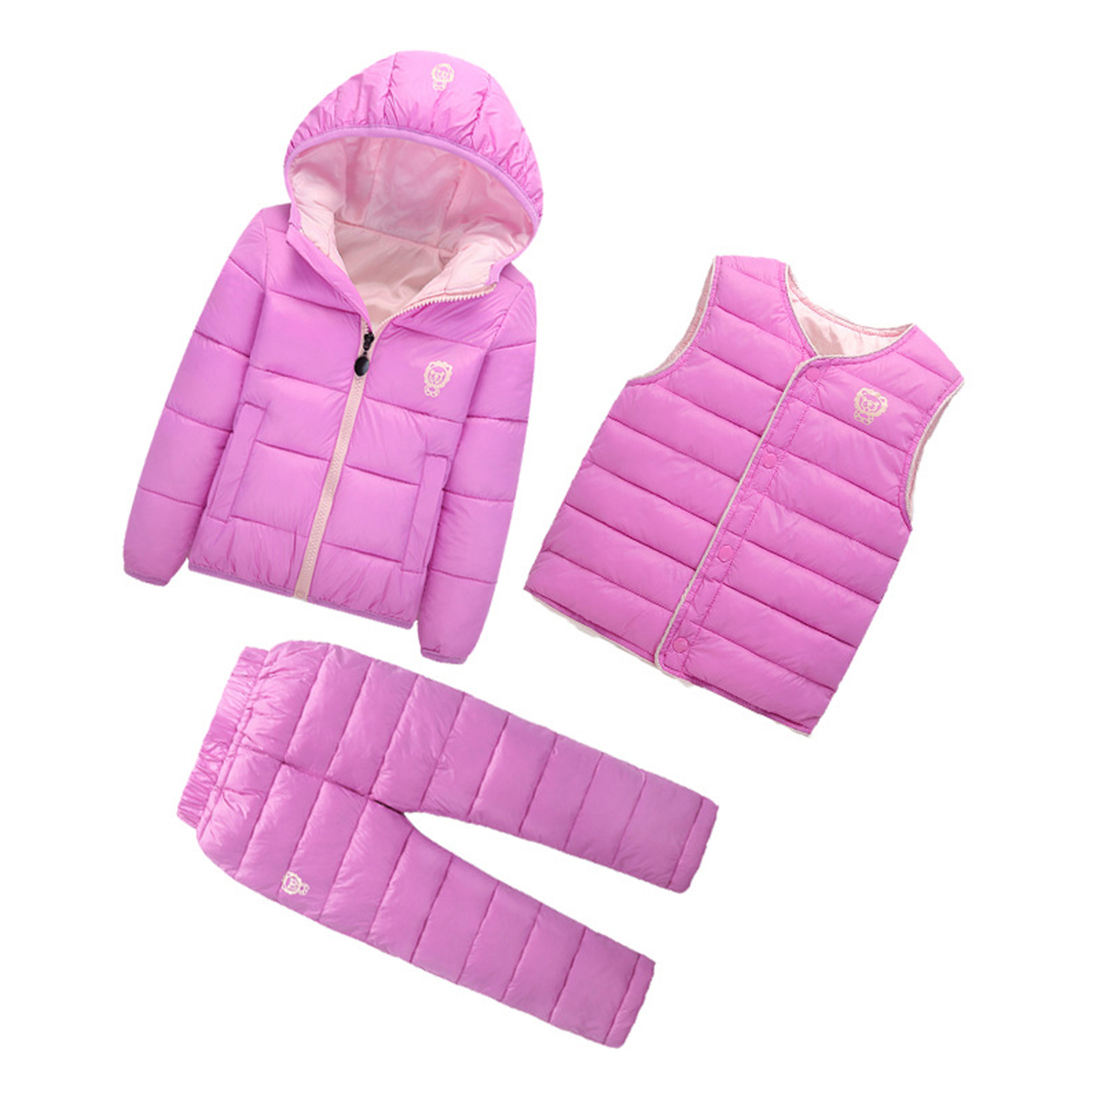 3-Pcs-Lot-Winter-Baby-Girls-Boys-Clothes-Sets-Children-Down-Cotton-padded-Coat-6-Colors-6-Size-5